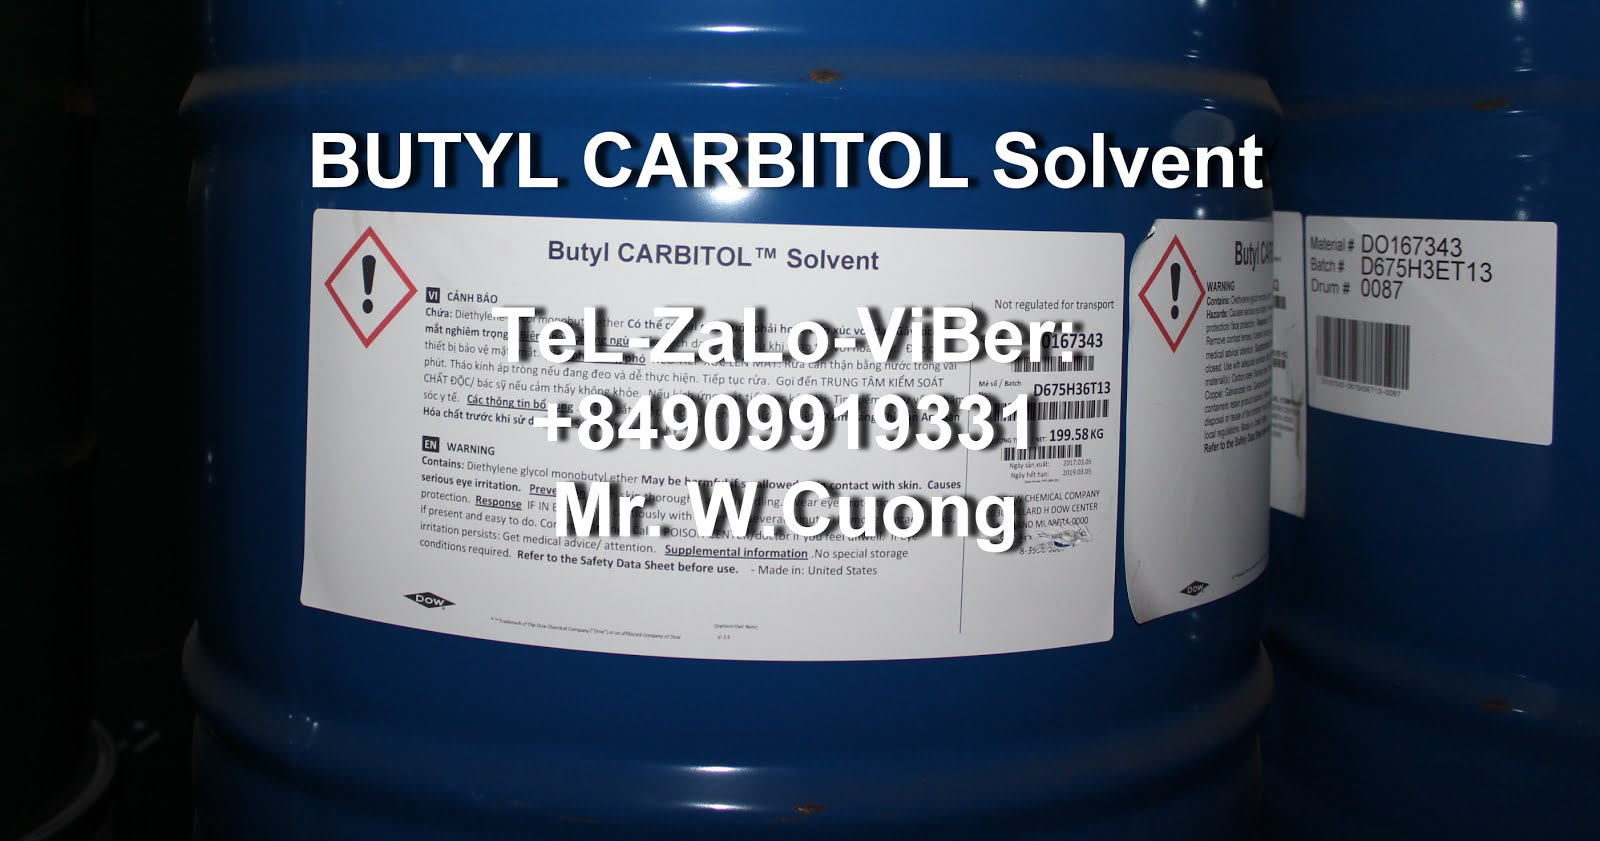 BUTYL CARBITOL  SOLVENT